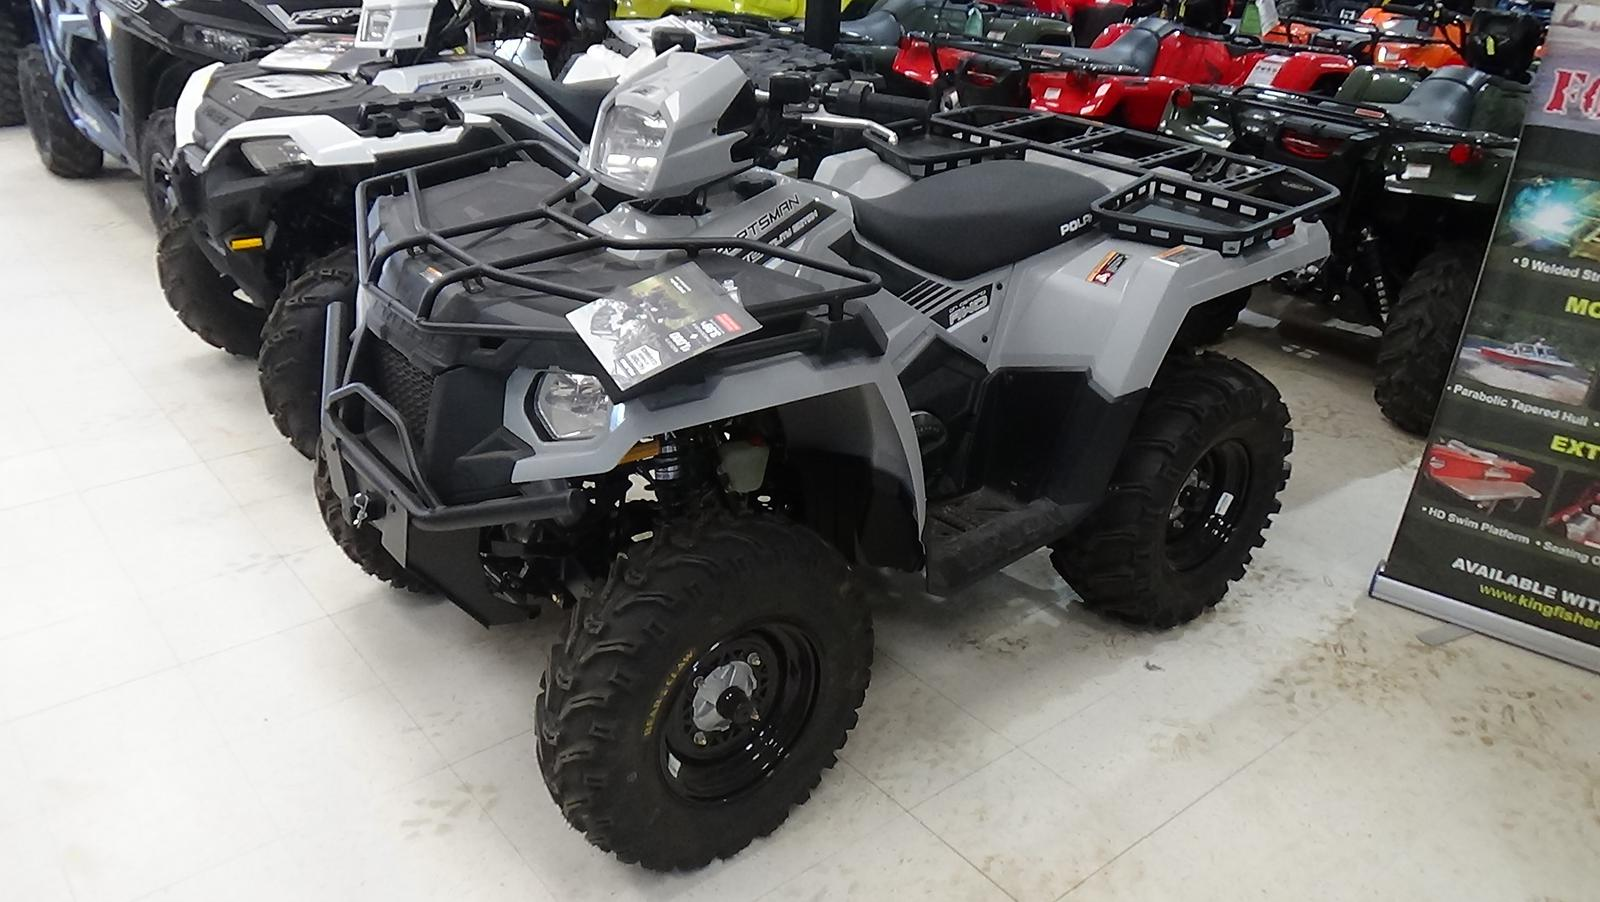 2019 polaris industries sportsman� 570 eps utility edition - ghost gray